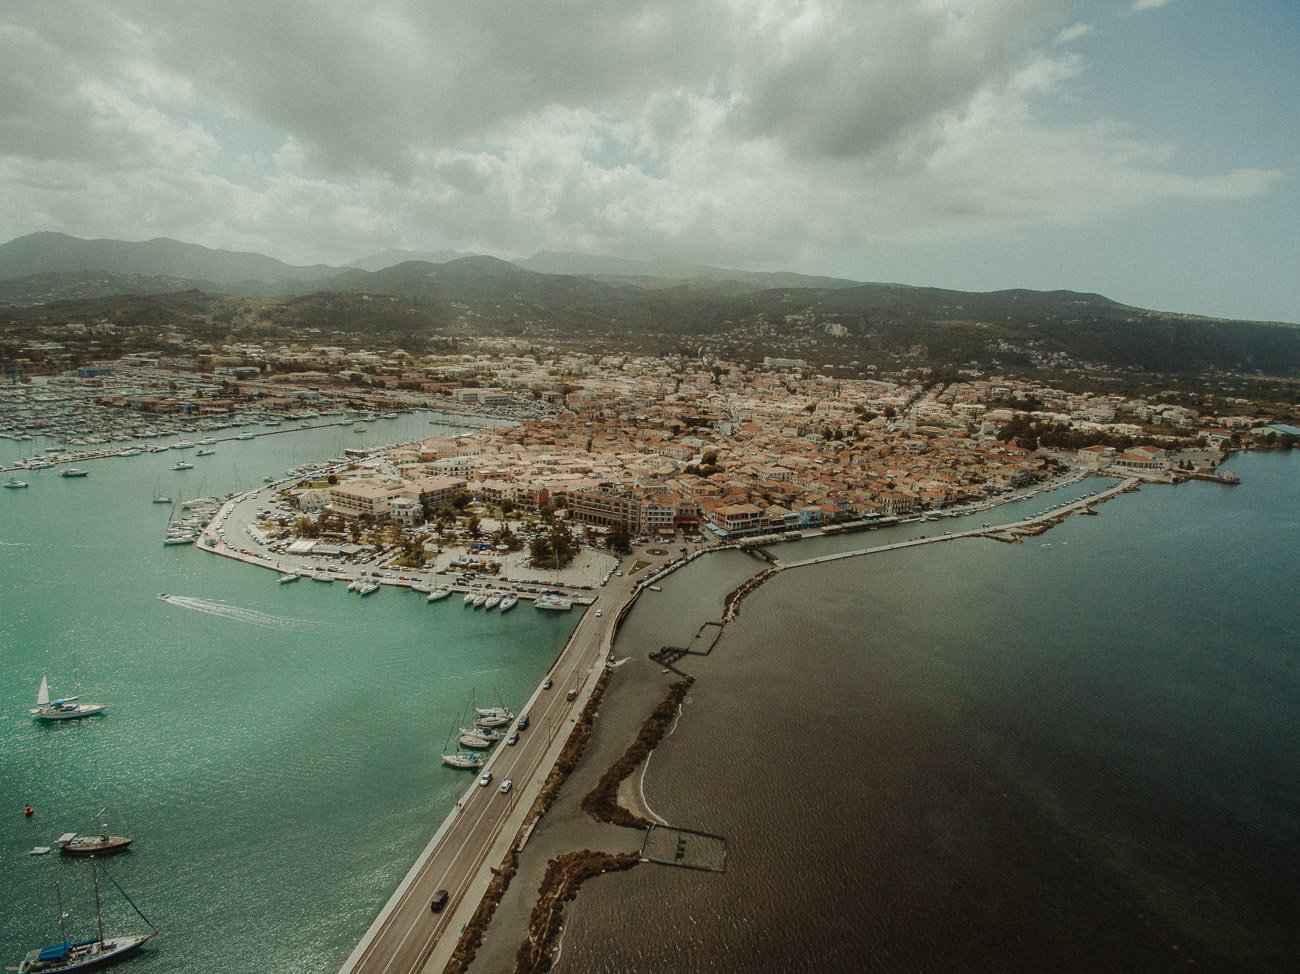 Lefkada wedding videographer filming aerial view of the city